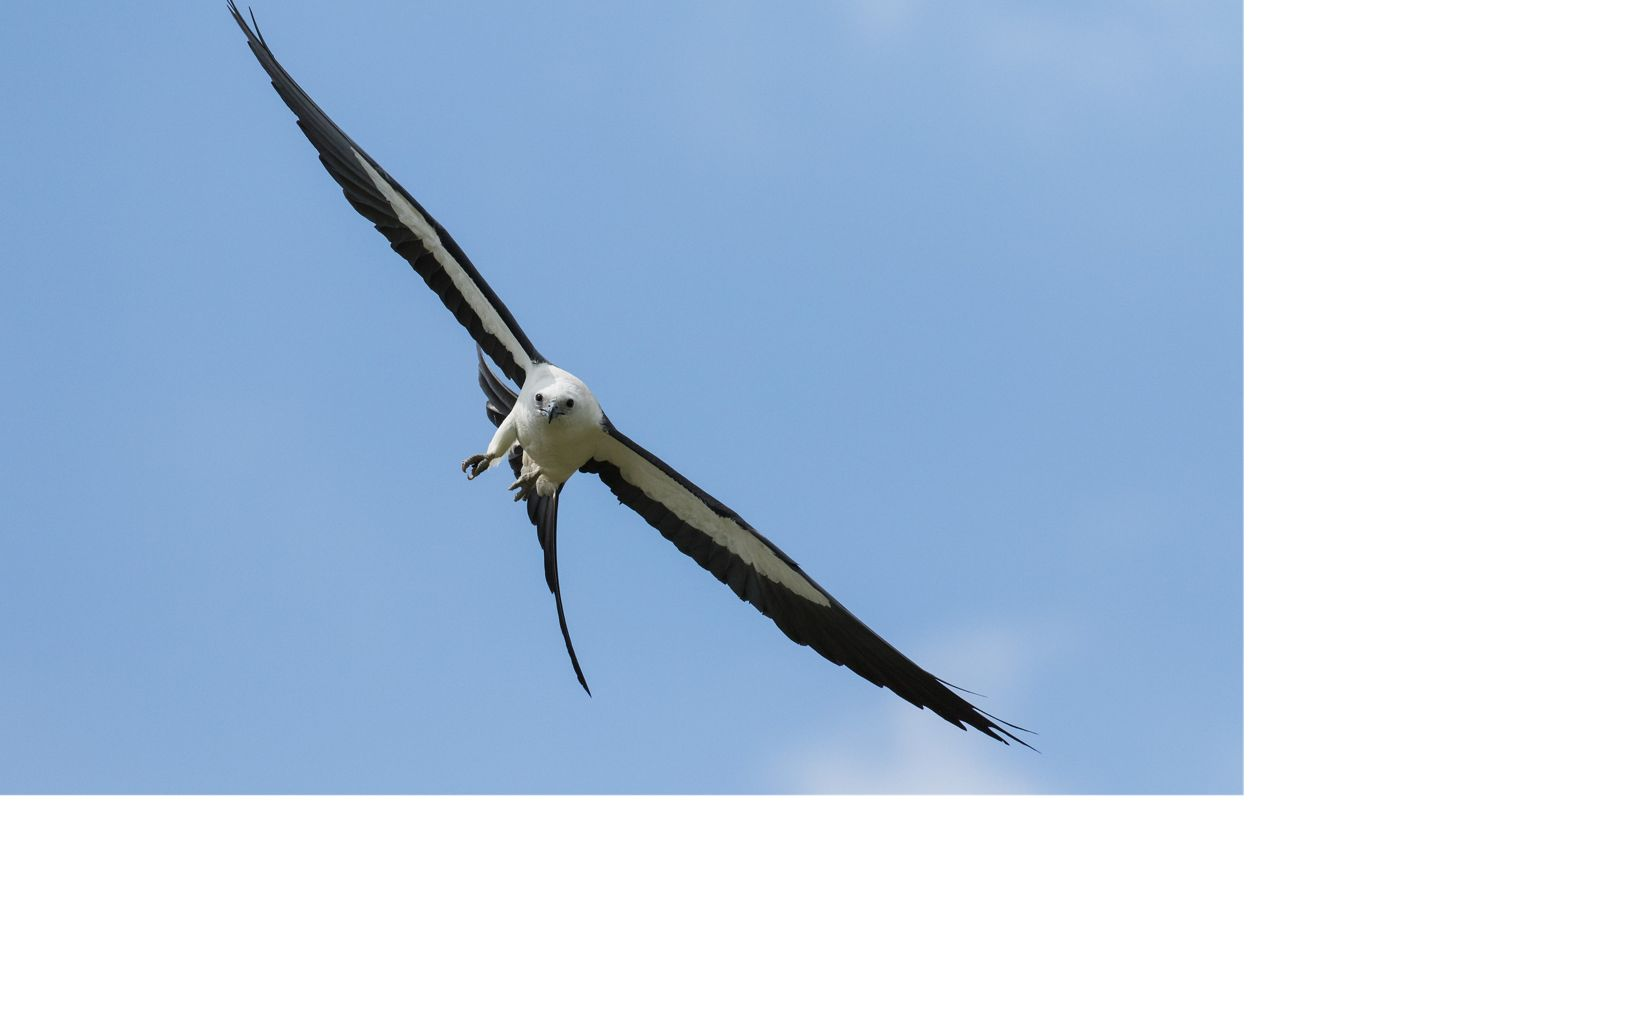 a large black and white bird in flight in a blue sky